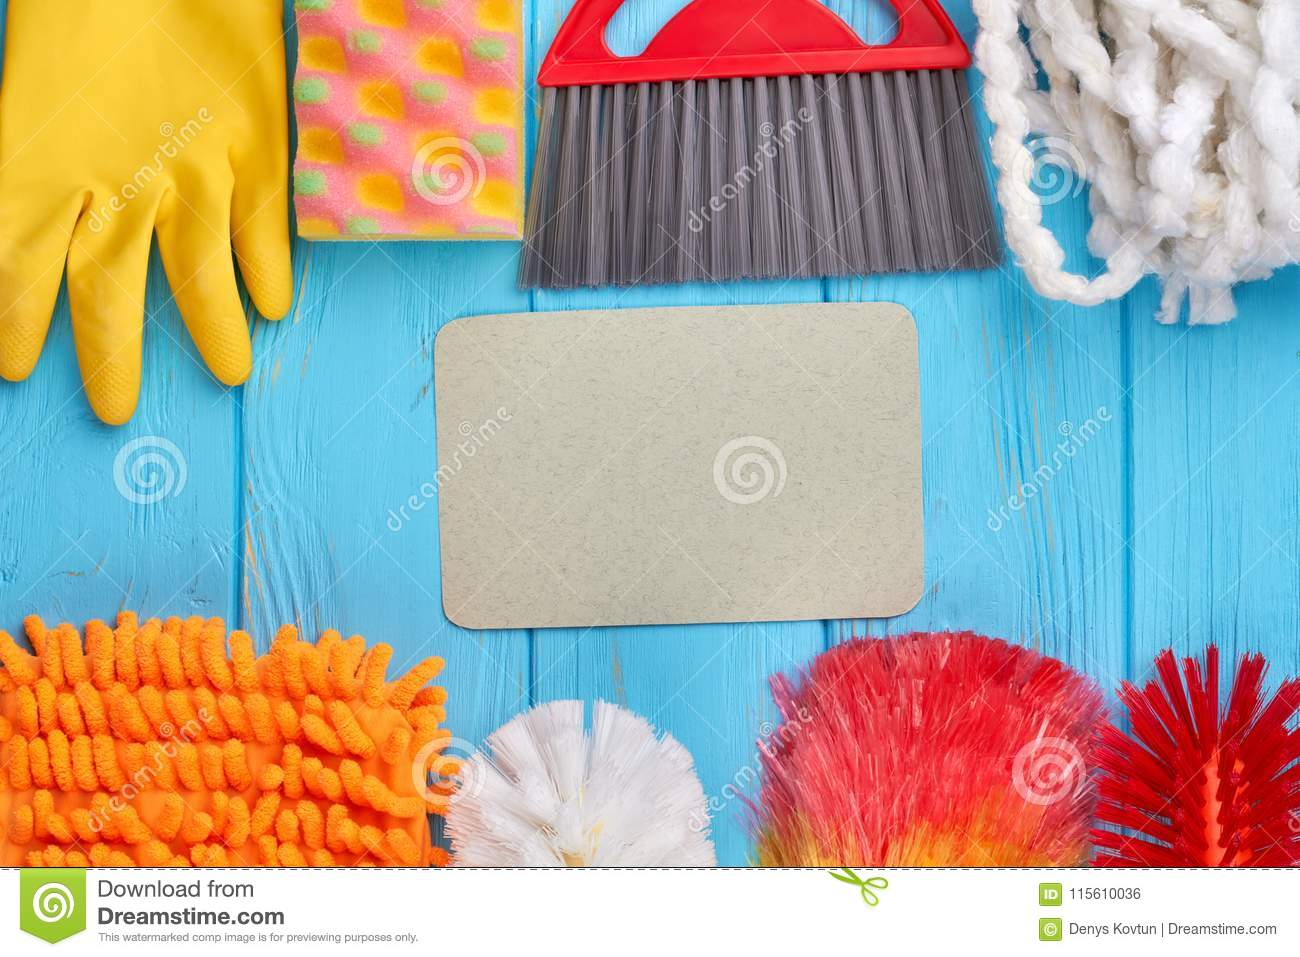 Set of cleaning supplies on wooden table.